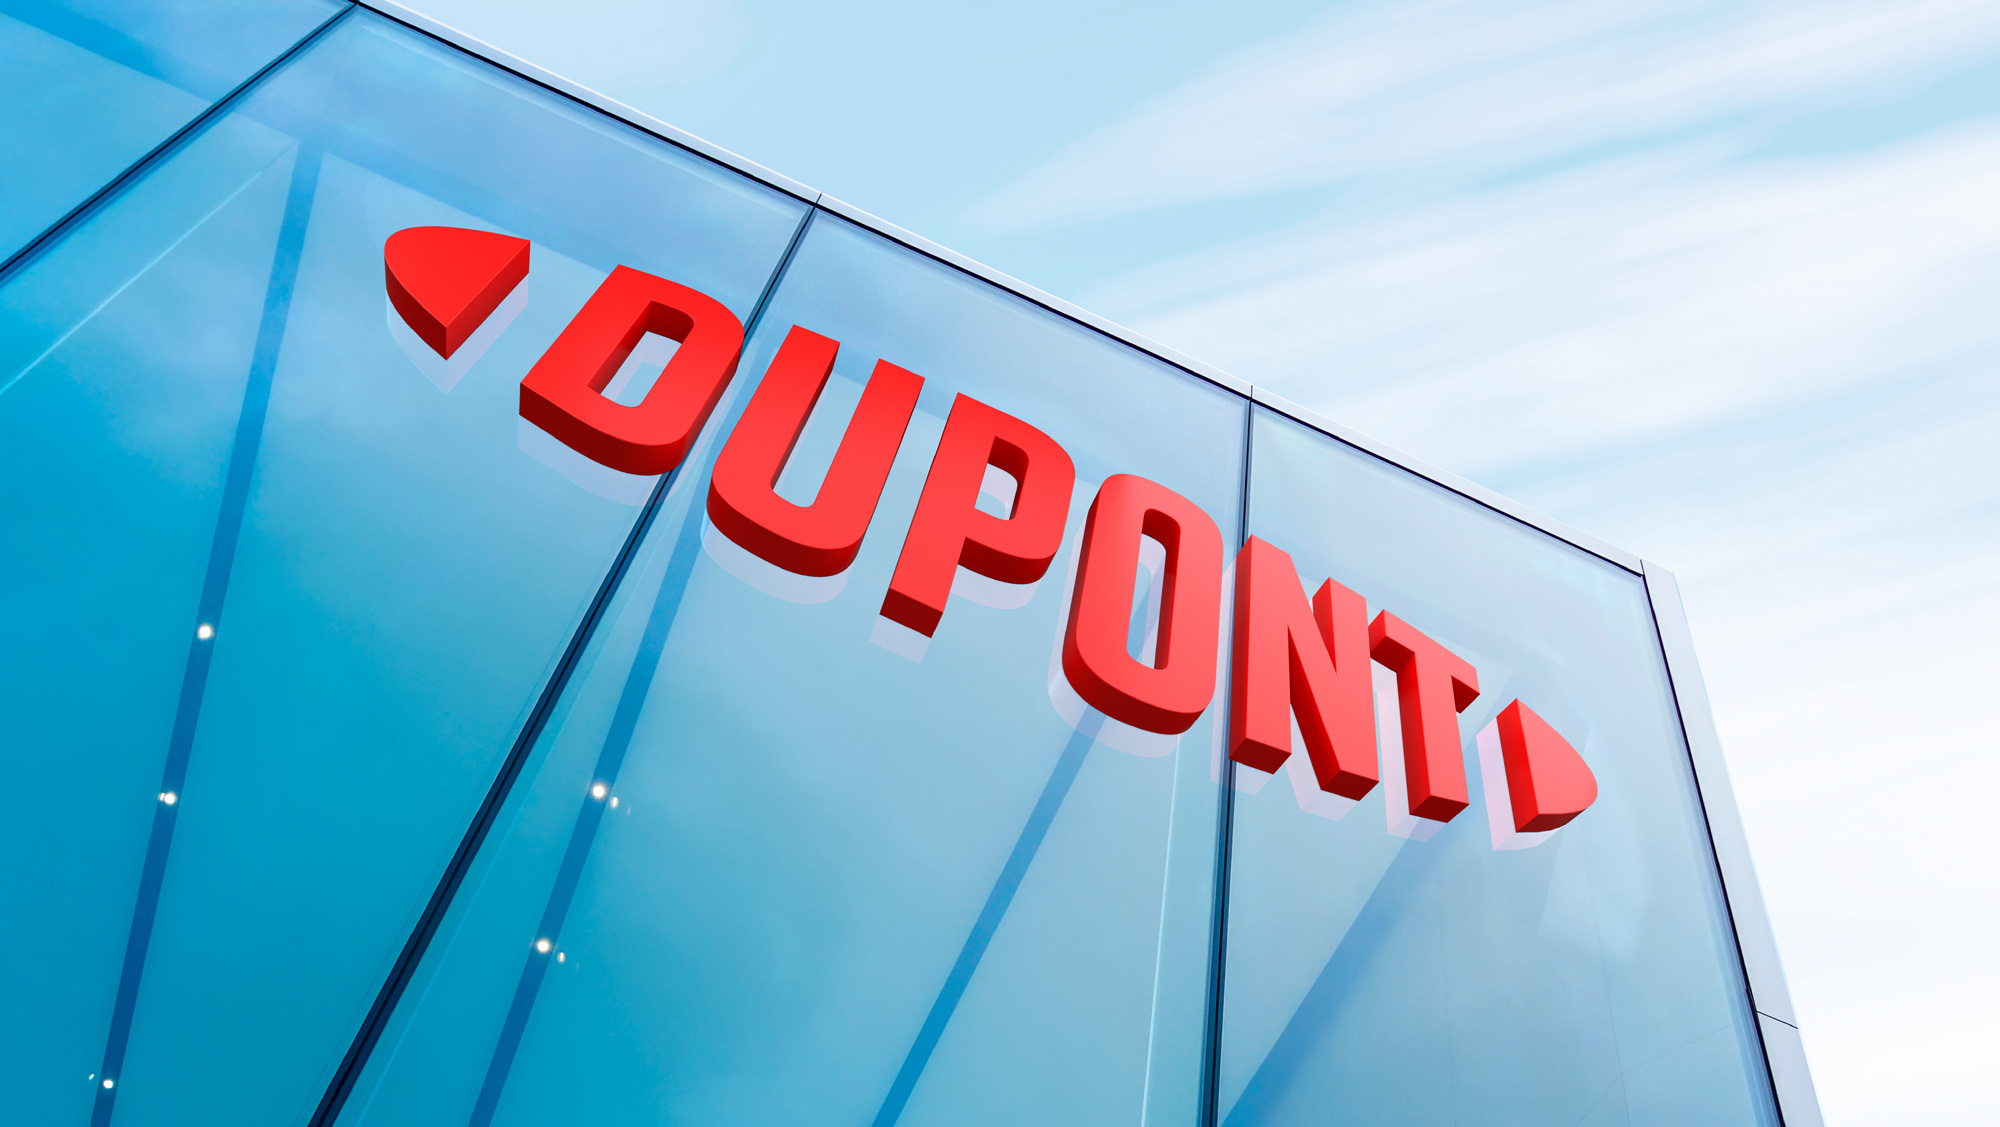 Dupont Logo - Brand New: New Logo and Identity for DuPont by Lippincott